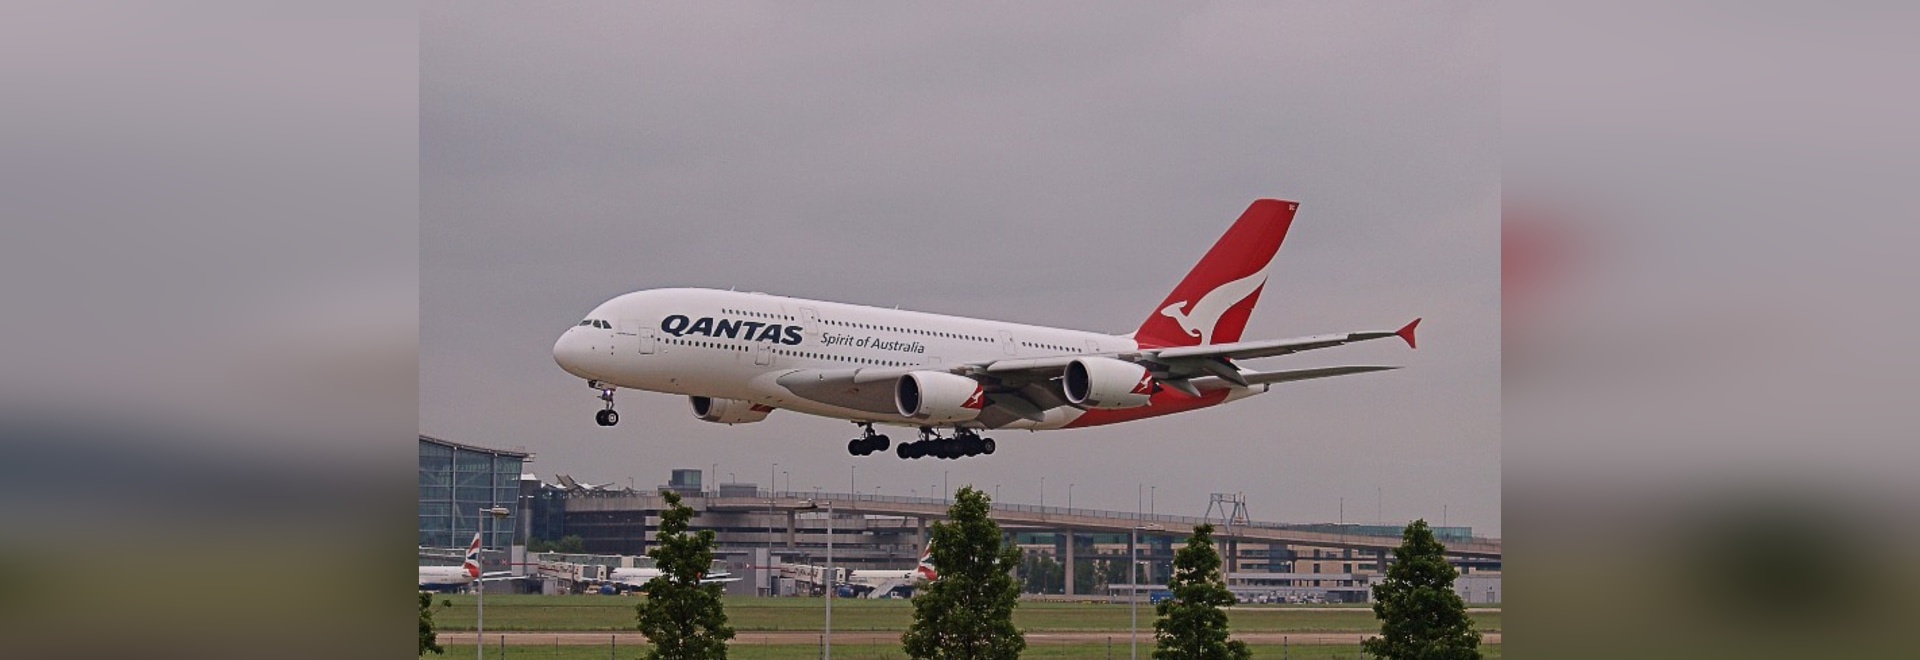 Qantas buys 19.9% stake in Australia's Alliance Airlines